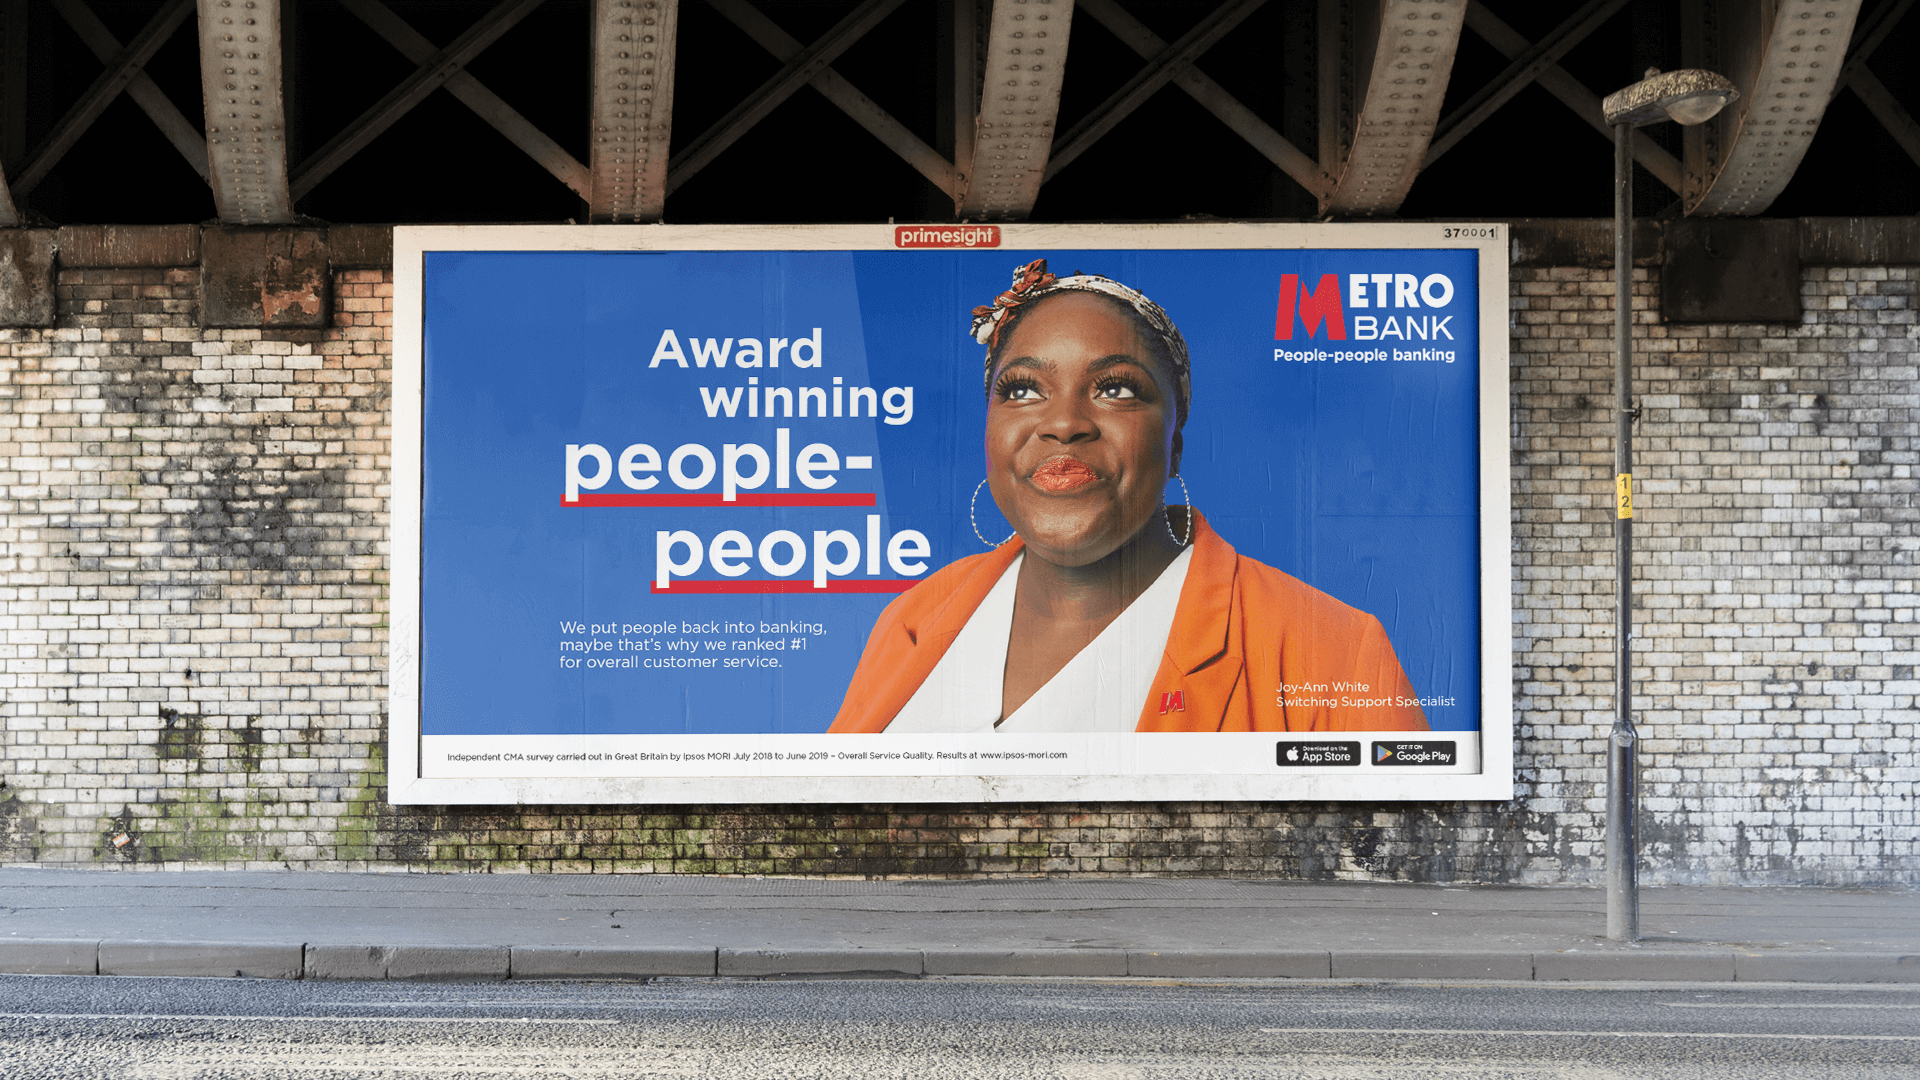 Metro Bank's Latest Campaign Celebrates 'People-People Banking'